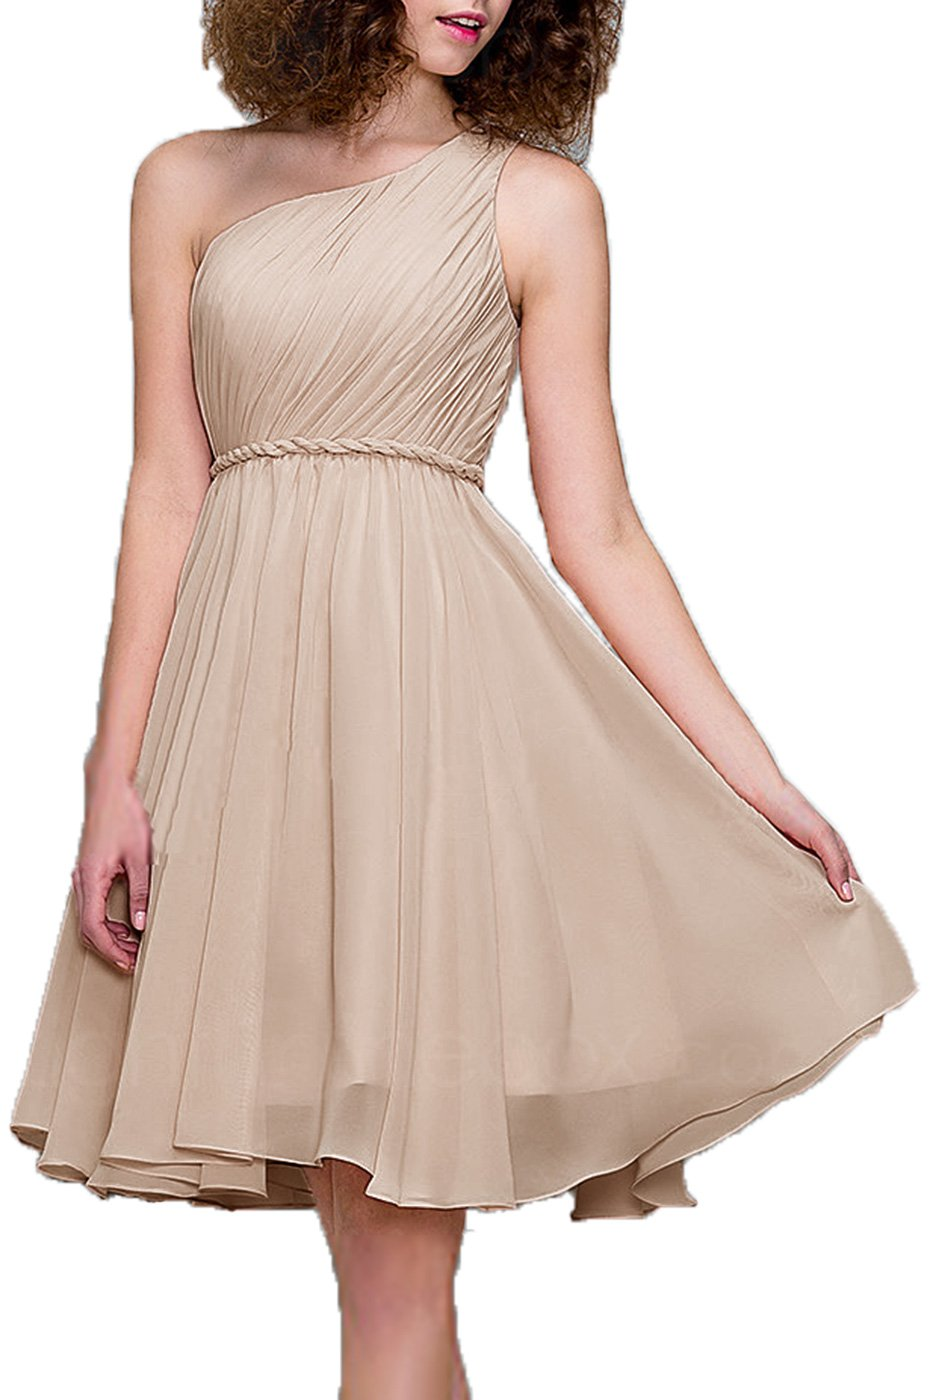 99Gown Bridesmaid Dresses Short Cocktail Dress One Shoulder Prom Formal Dresses For Women, Color Champagne,4